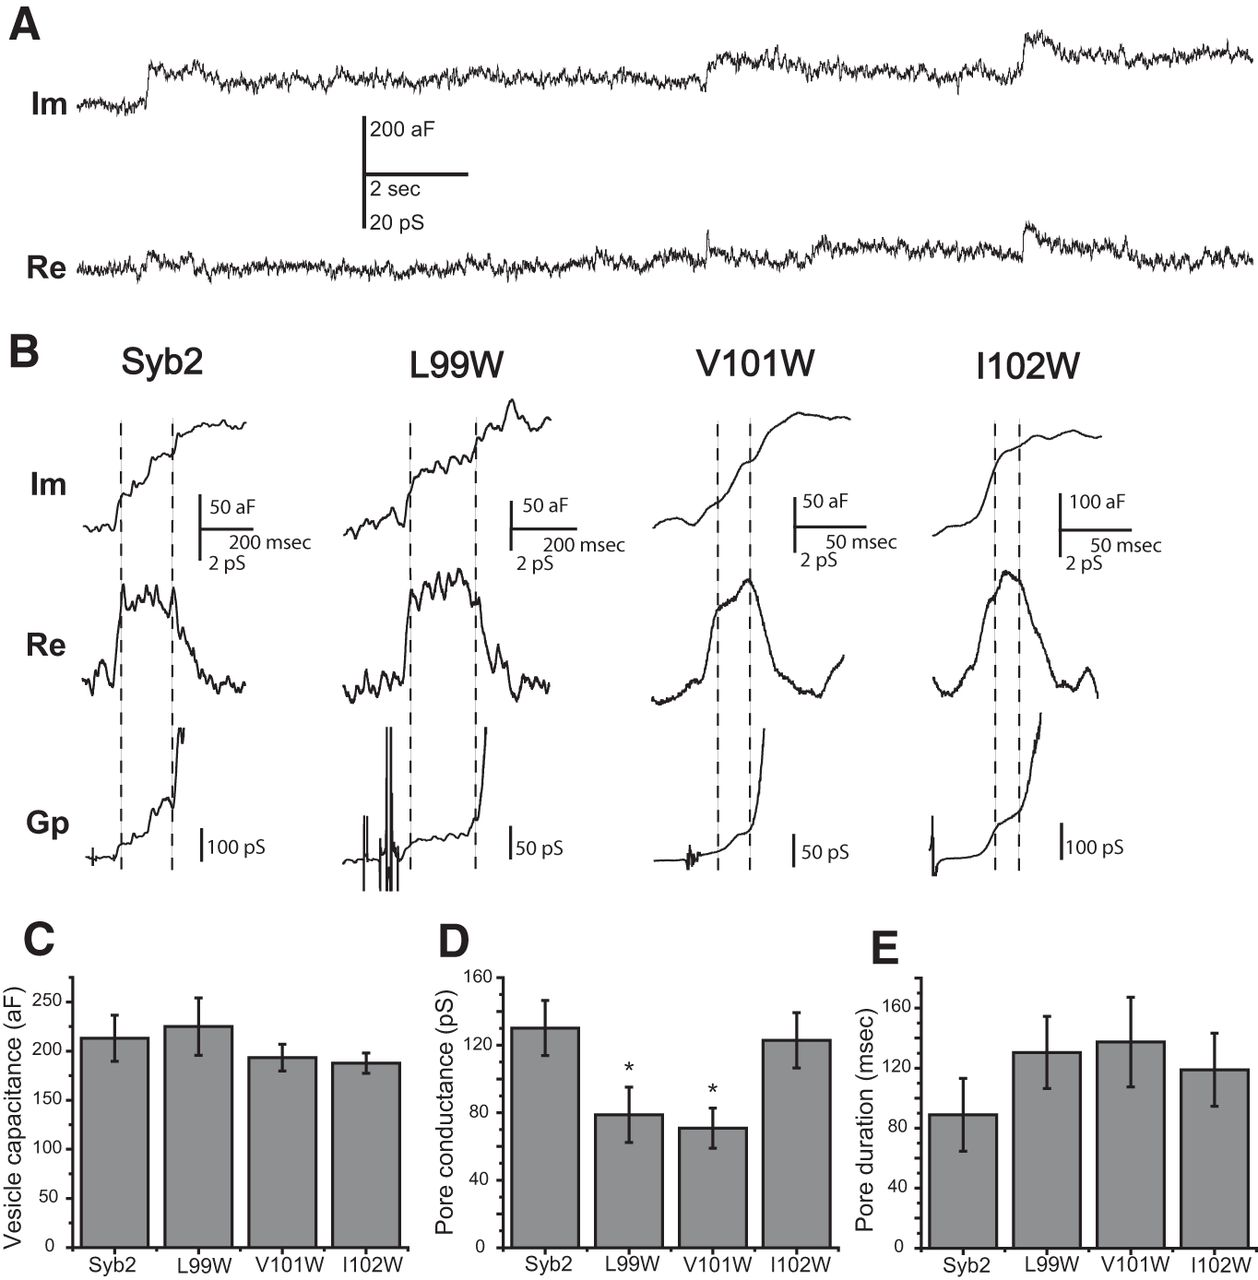 A Structural Role For The Synaptobrevin 2 Transmembrane Domain In Completed Lockin Amplifier Circuit Board Alternate View Download Figure